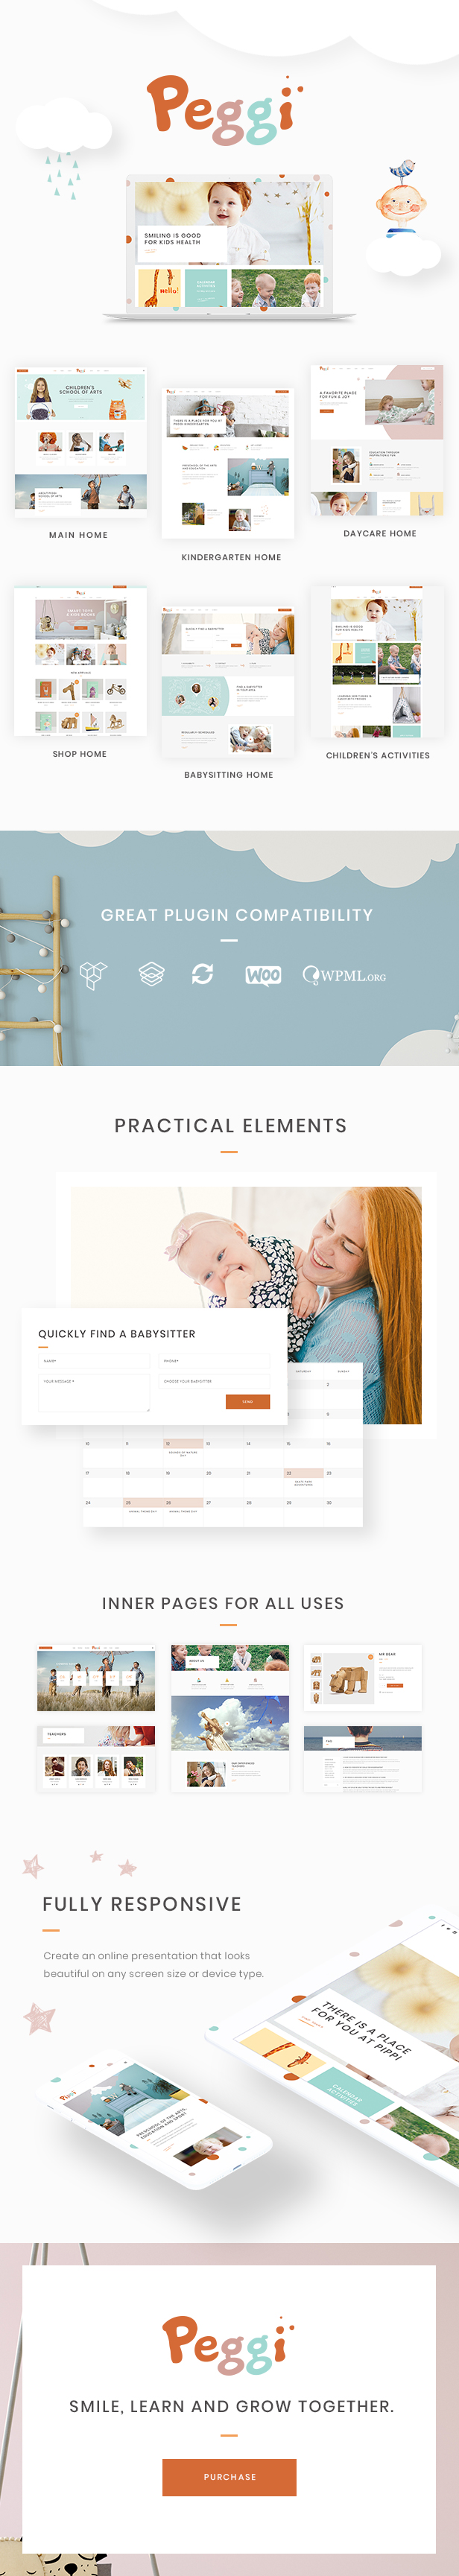 peggi - a multipurpose wordpress children theme (children) Peggi – A Multipurpose WordPress Children Theme (Children) 01